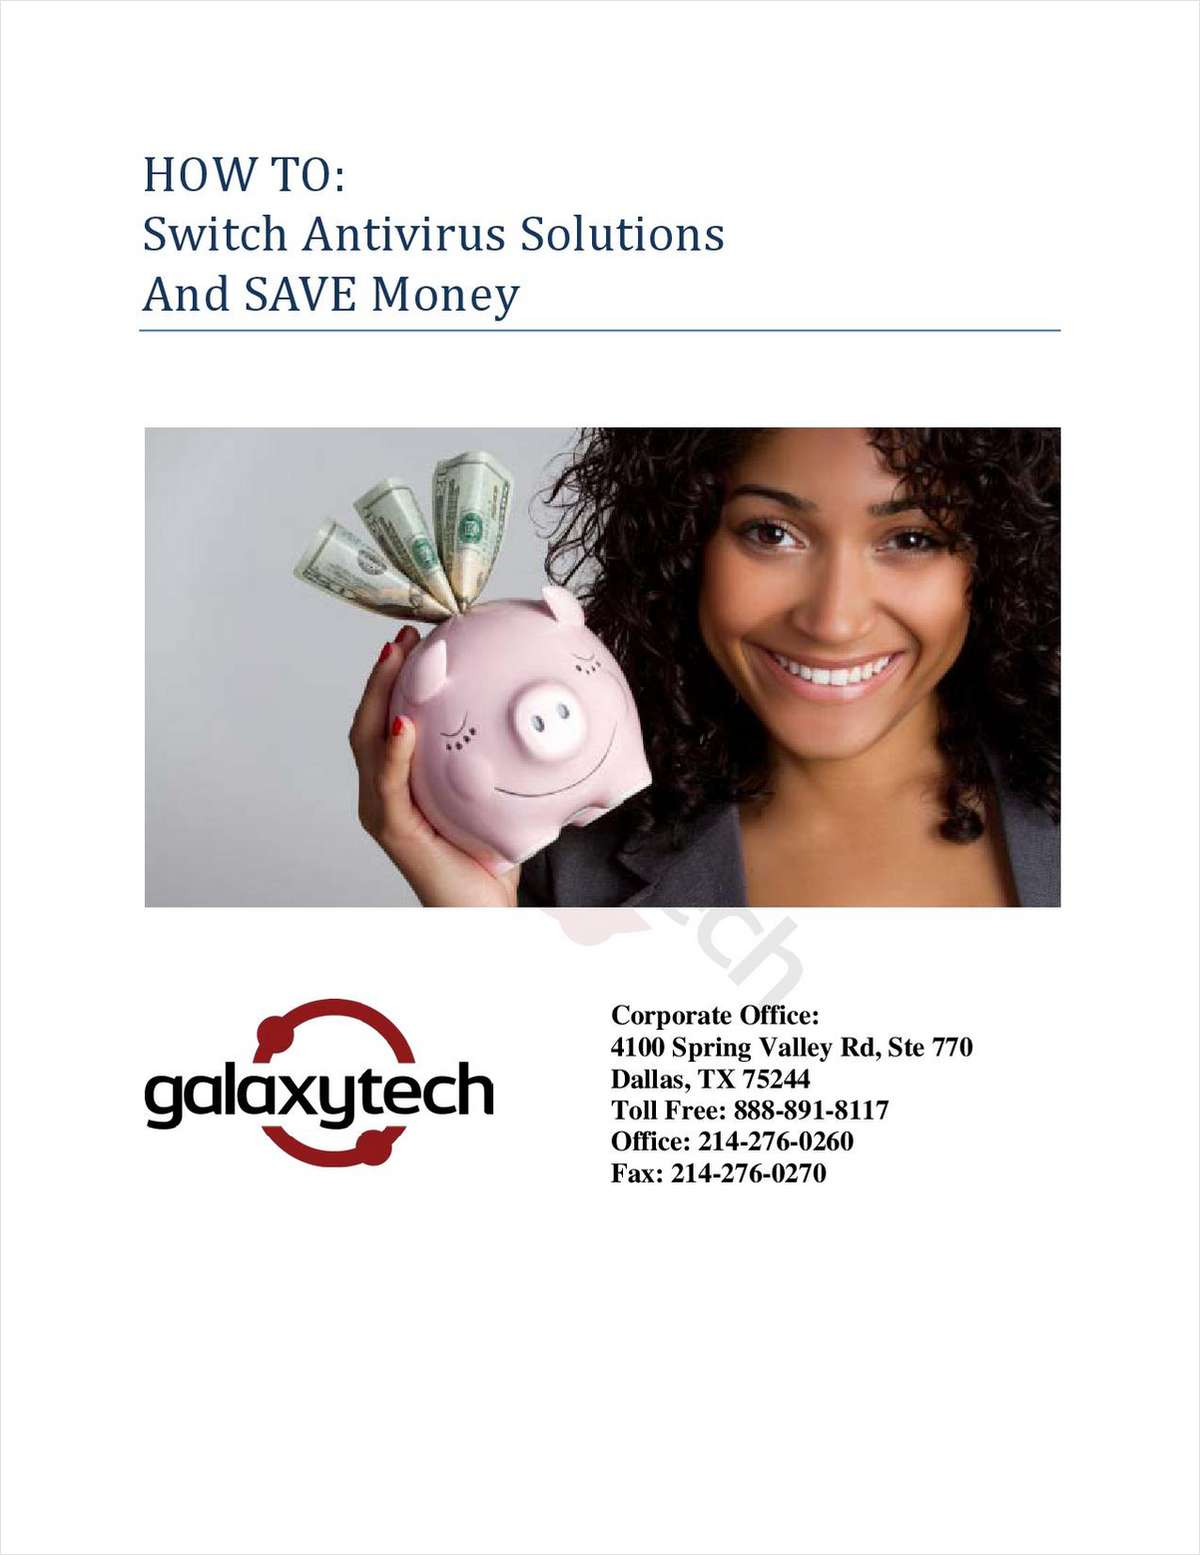 Learn How To Save Money by Switching Antivirus Solutions